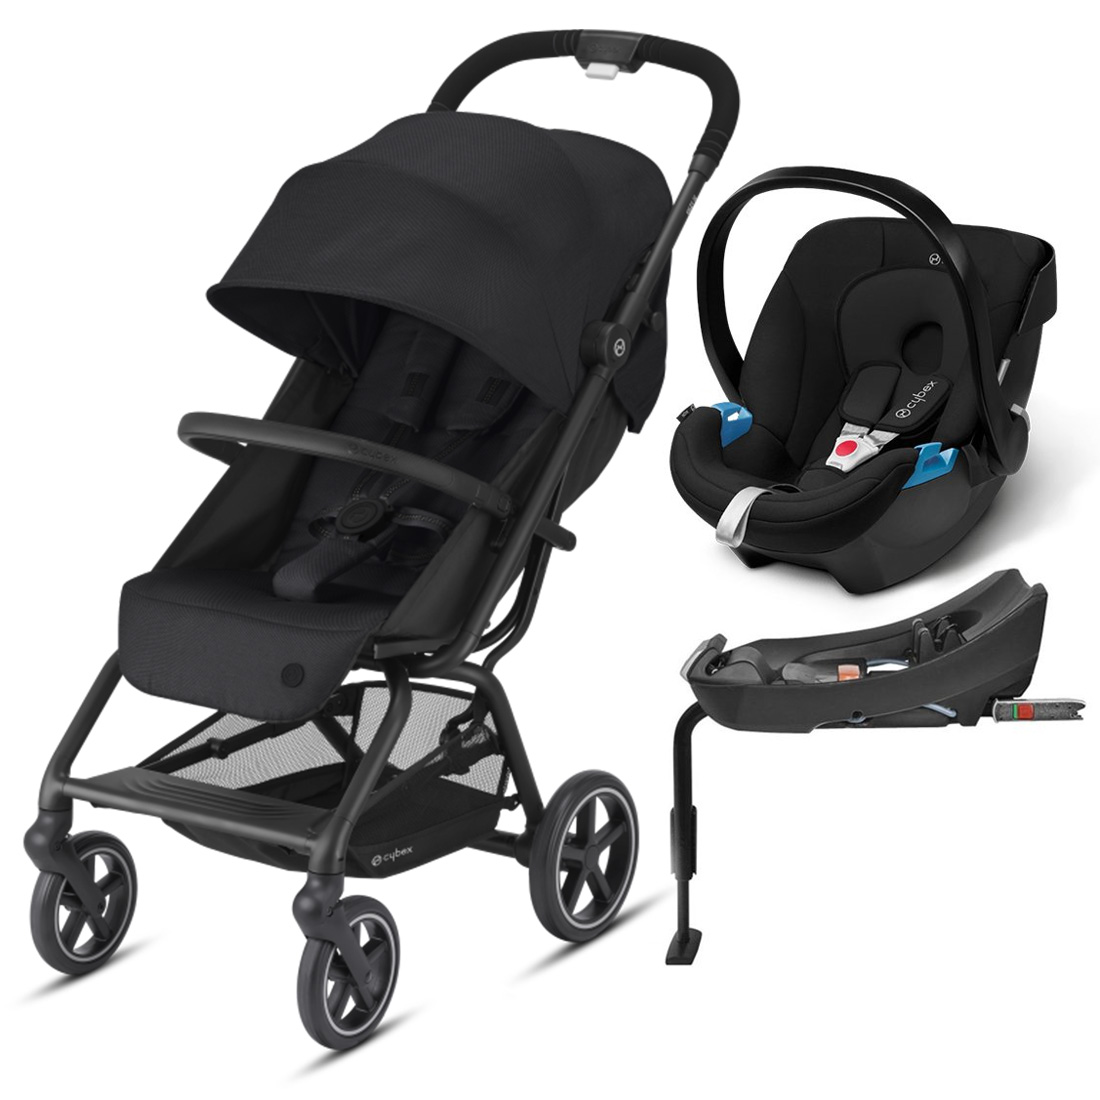 Coche Travel System Eezy S Plus v2 NG + Aton + Base